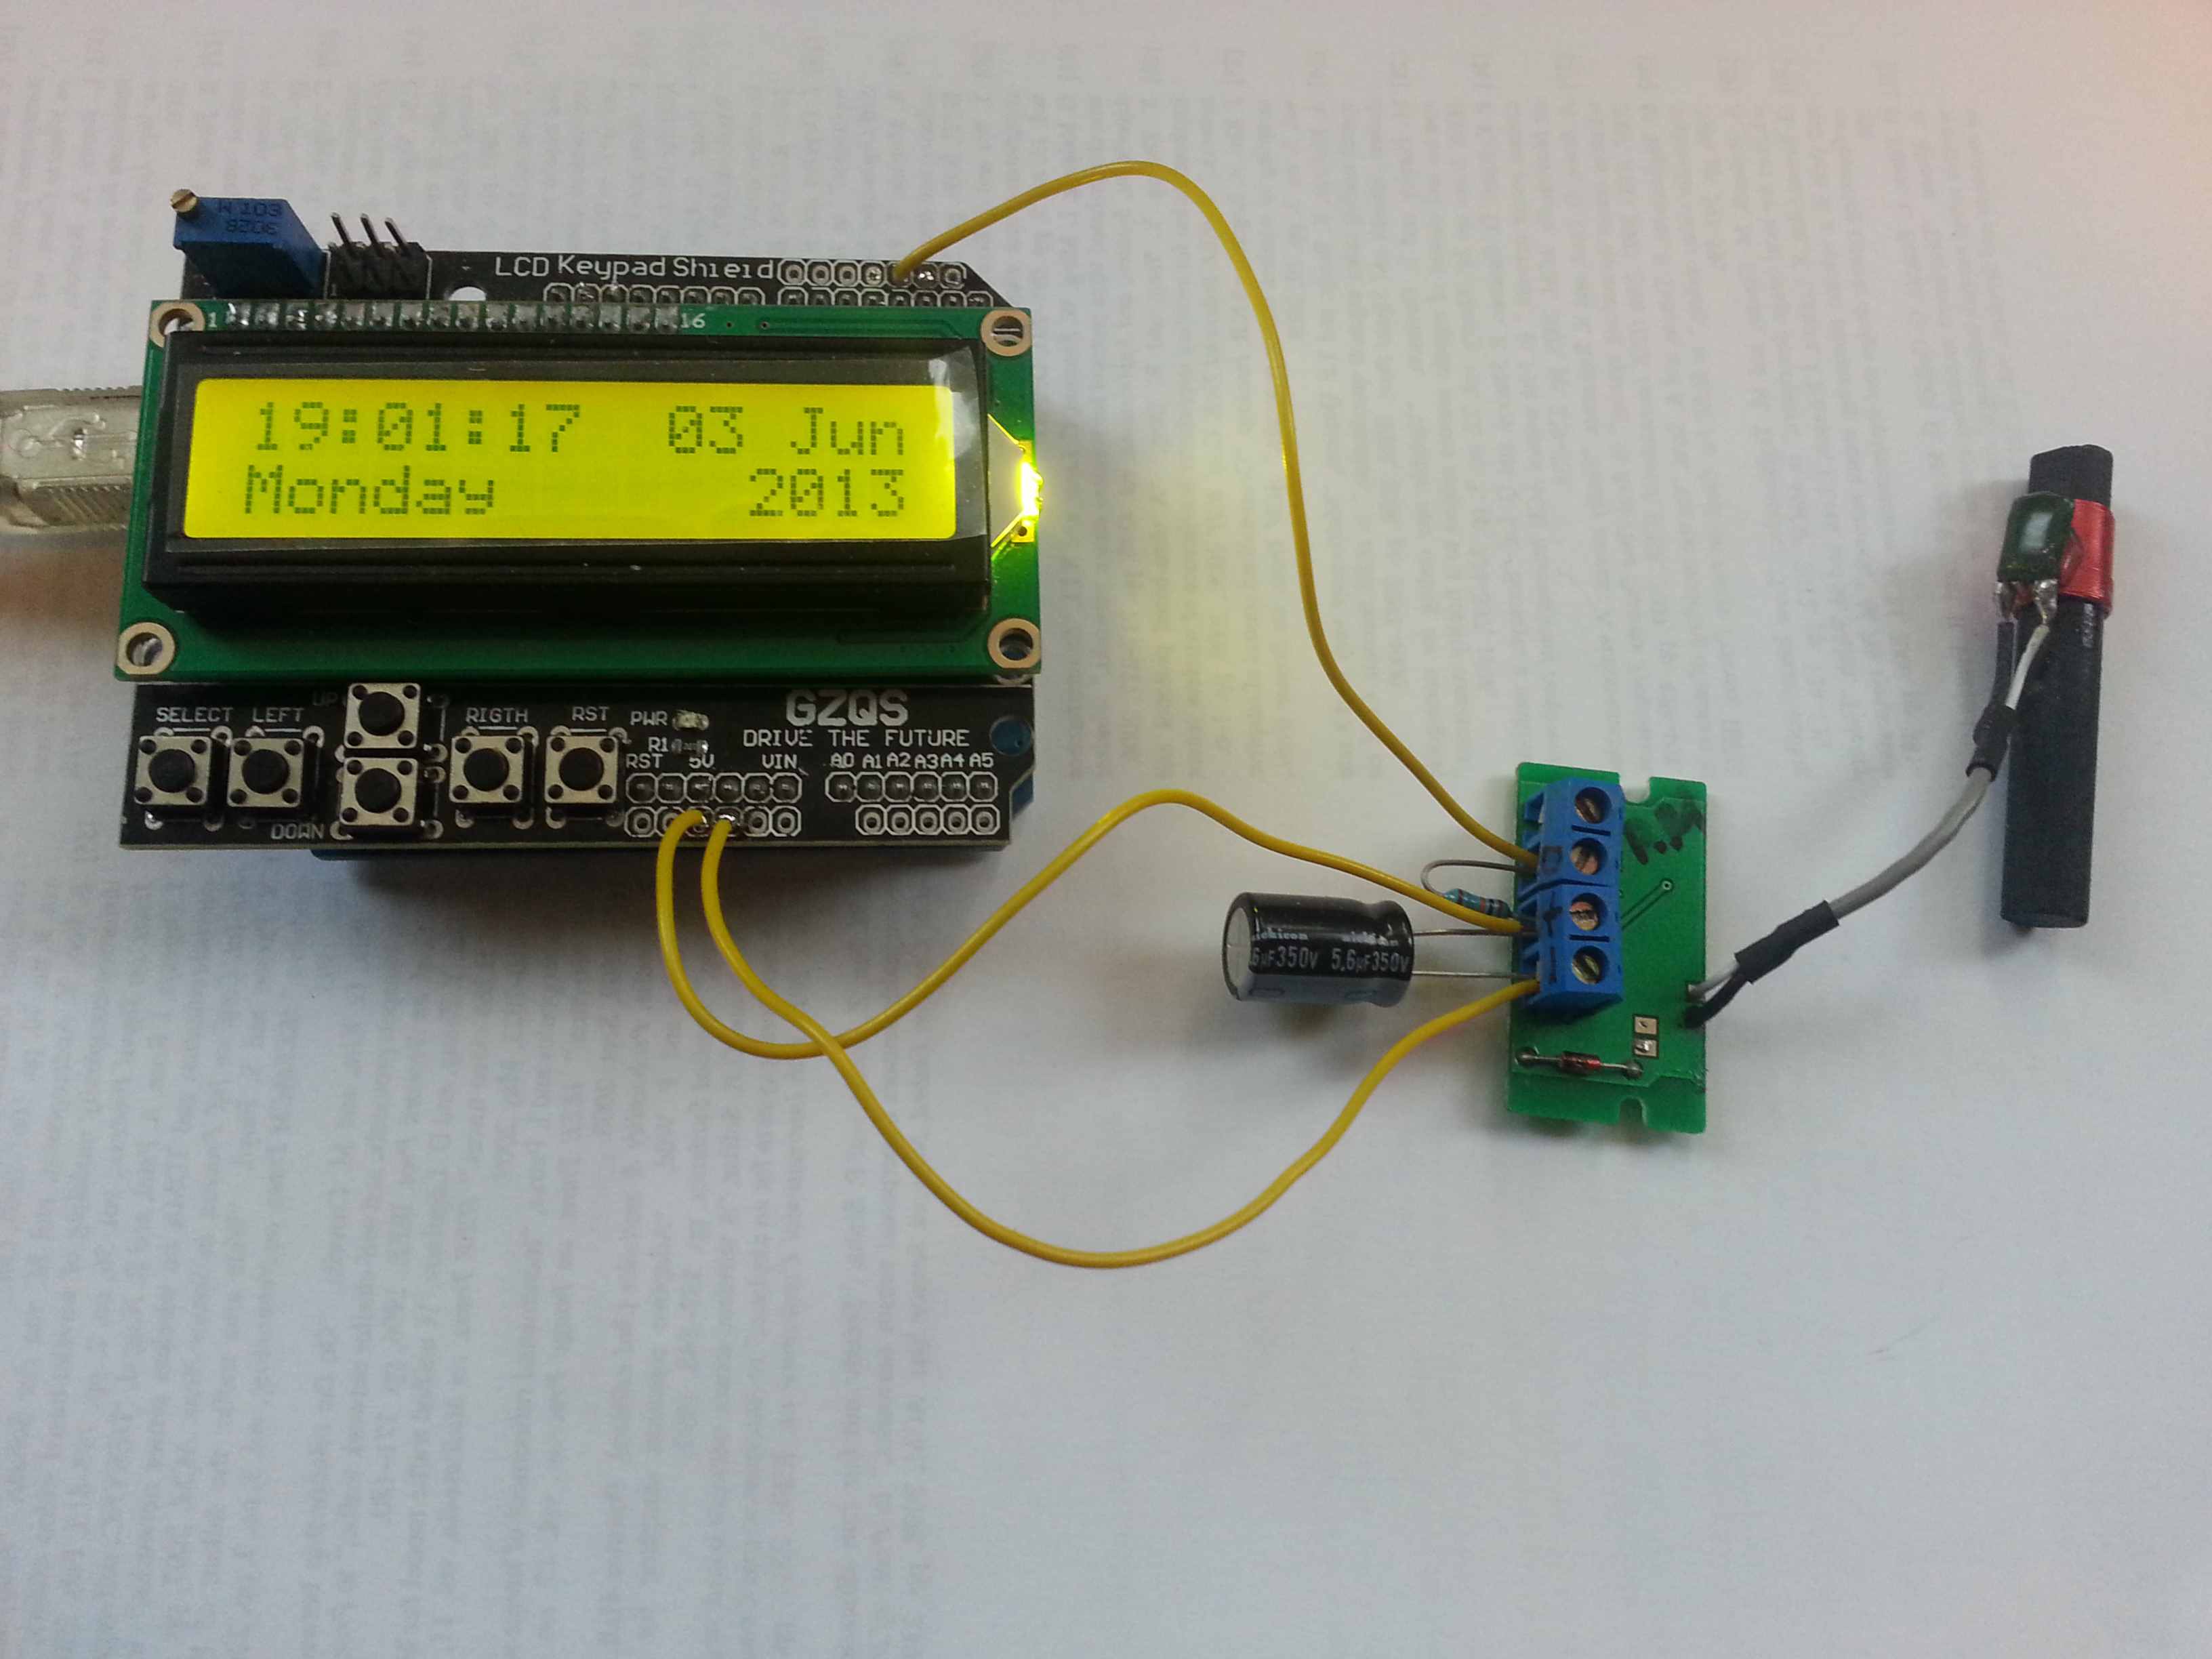 DCF77 TimeZone Example on LCD Display